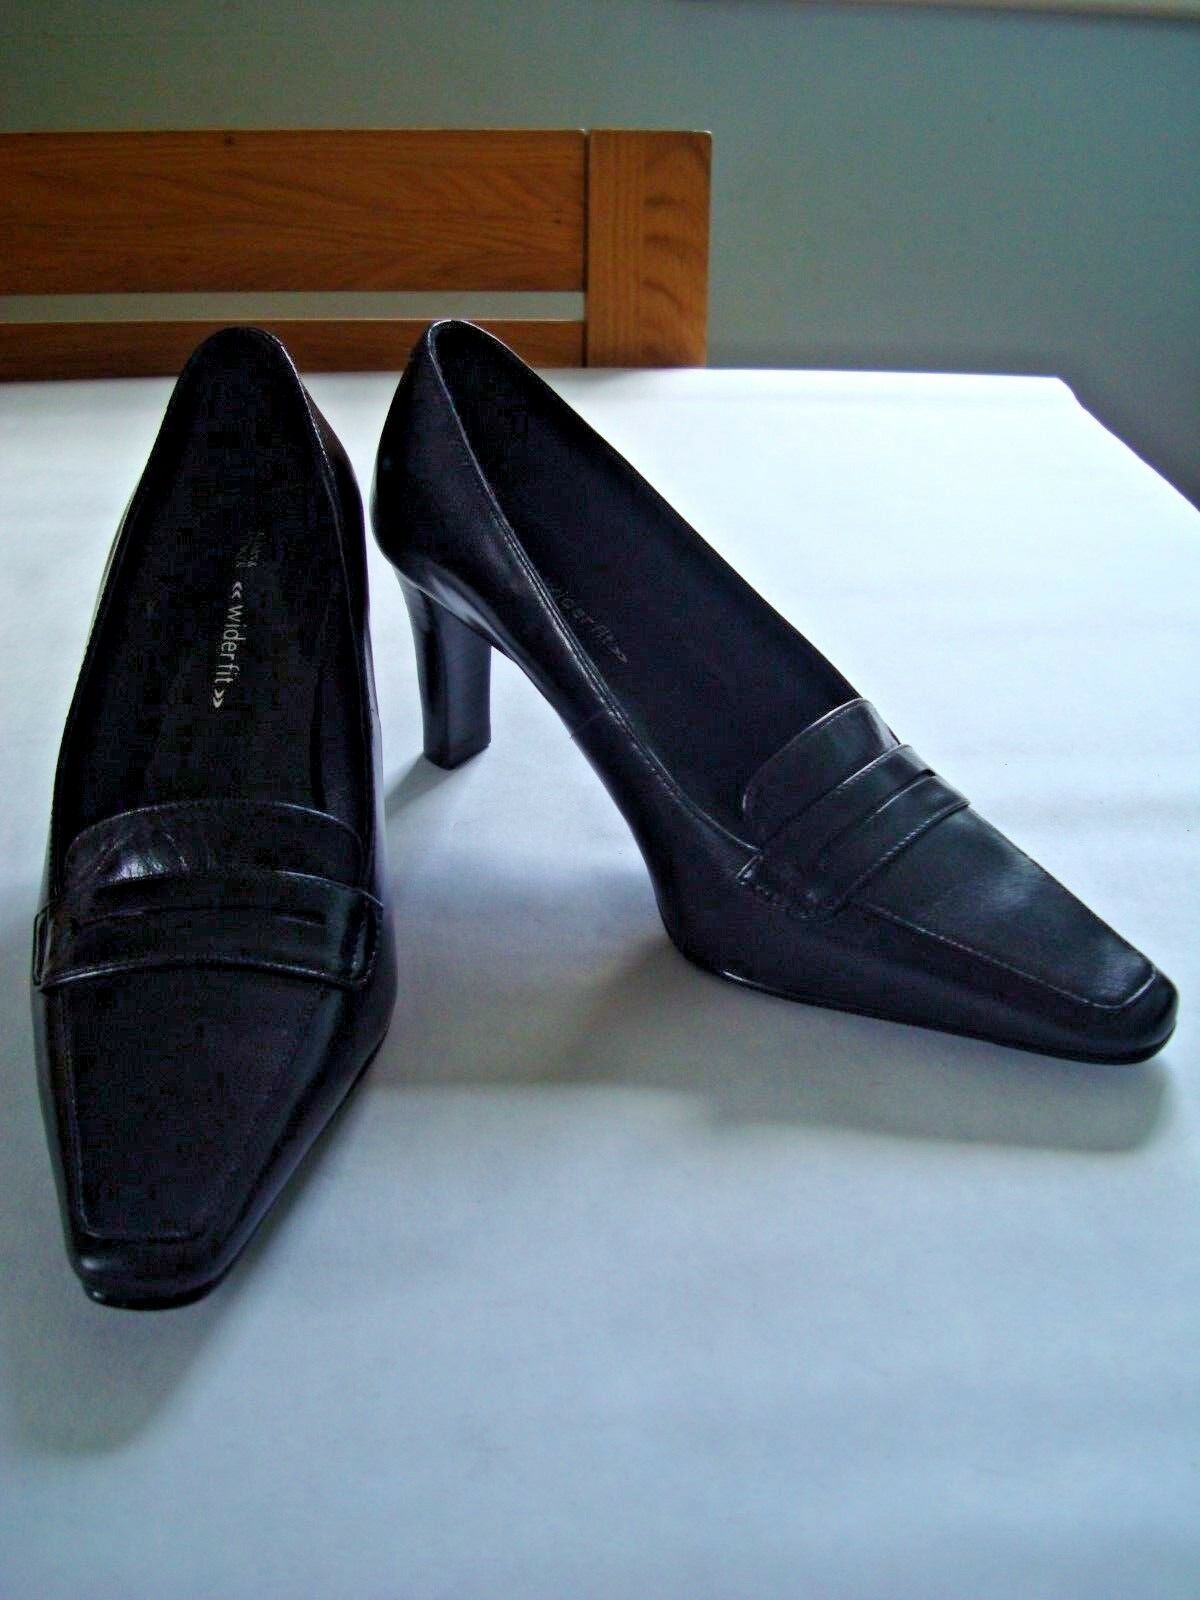 M&S WIDER FIT BLACK LEATHER HIGH HEELED COURT SHOES, SIZE UK 3   EUR 35.5 - NEW